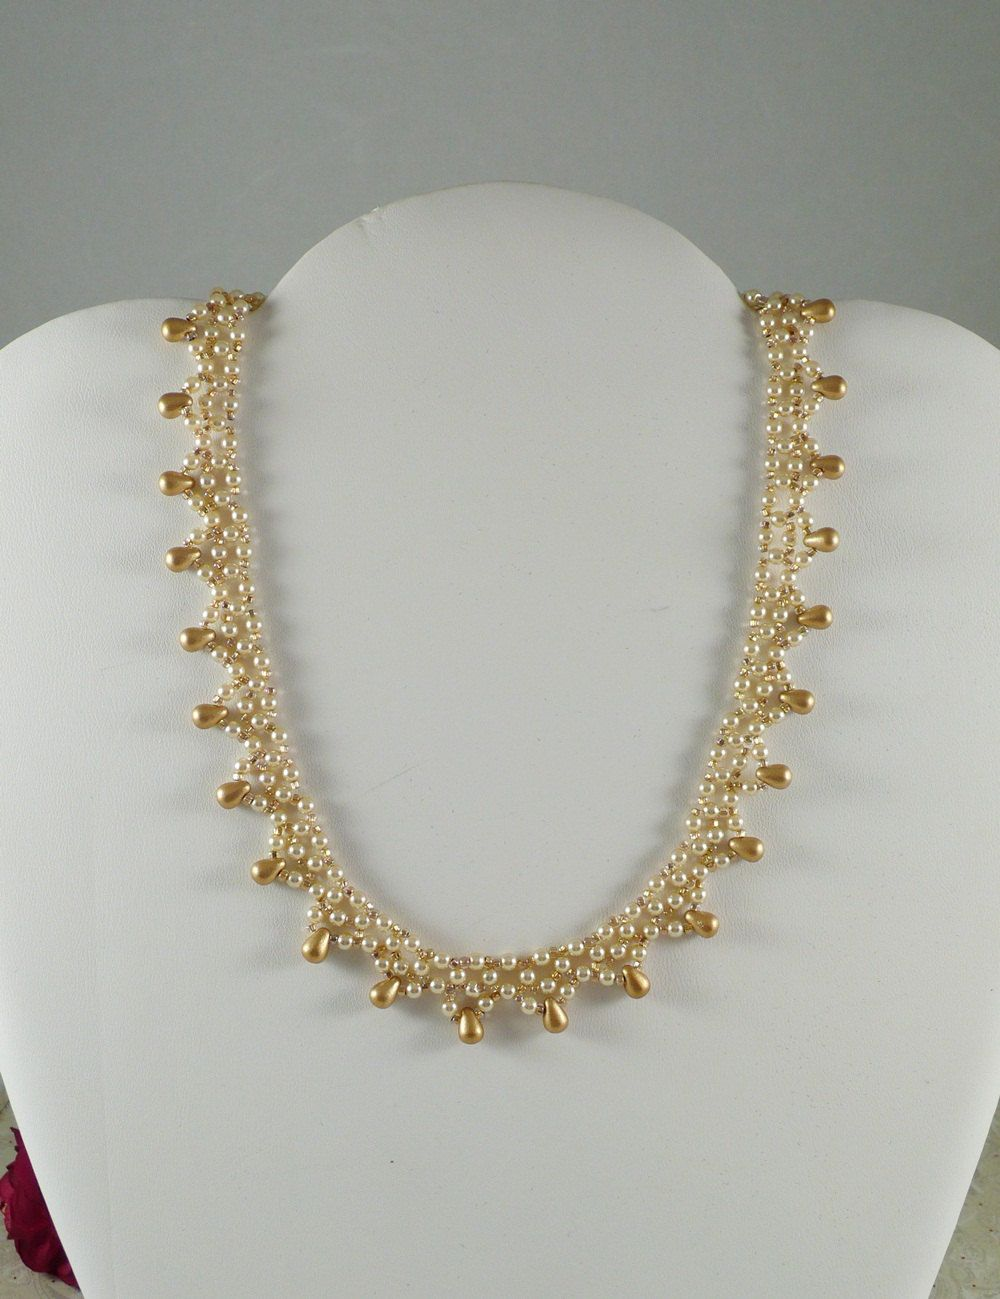 Pearl Necklace Woven with Golden Drops by IndulgedGirl on Etsy